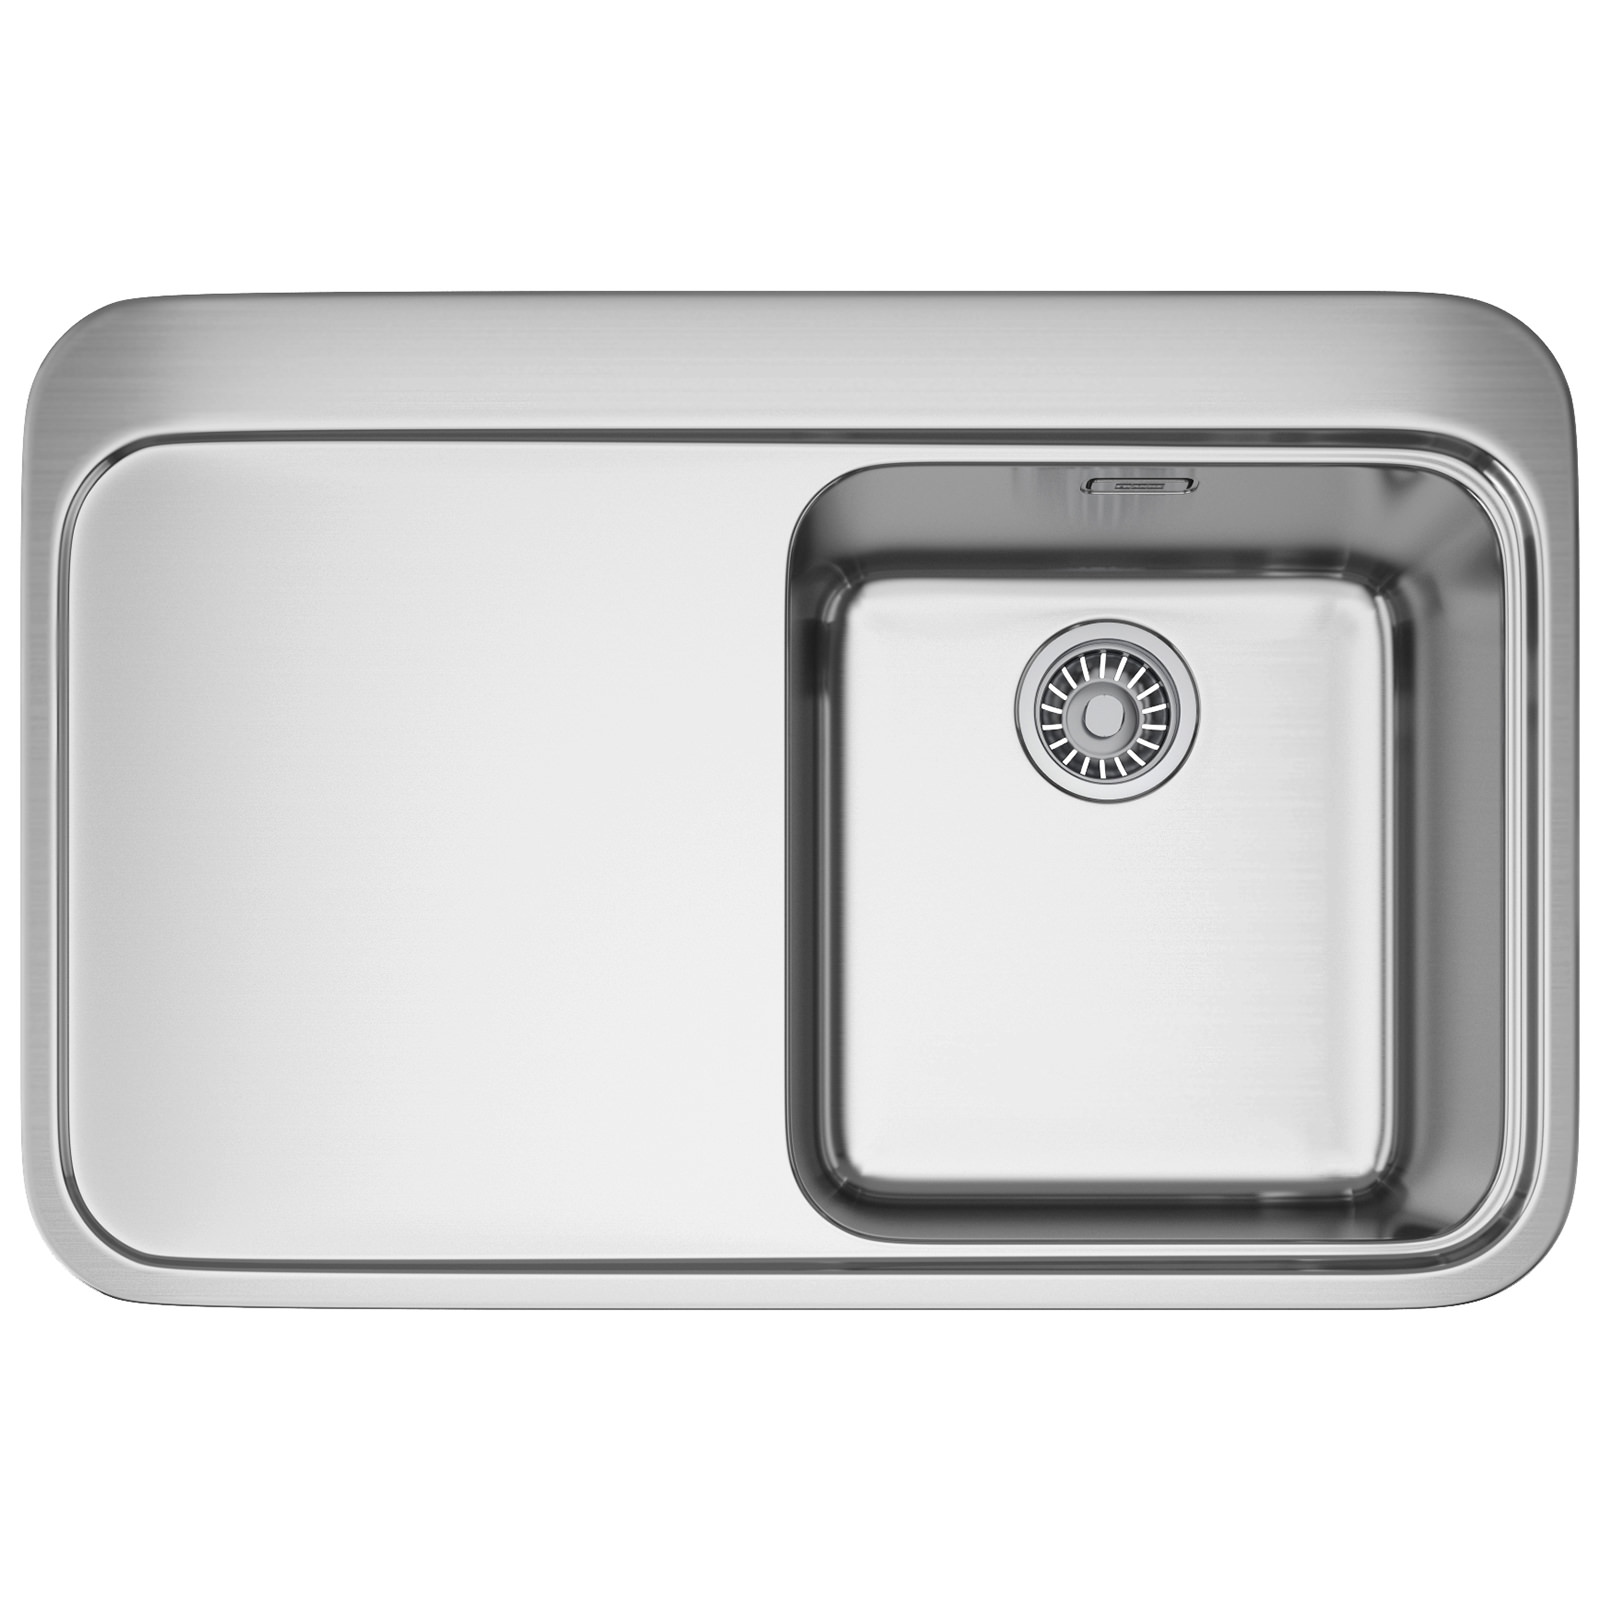 Franke Sinos SNX 211 Stainless Steel 1.0 Bowl Inset Kitchen Sink ...